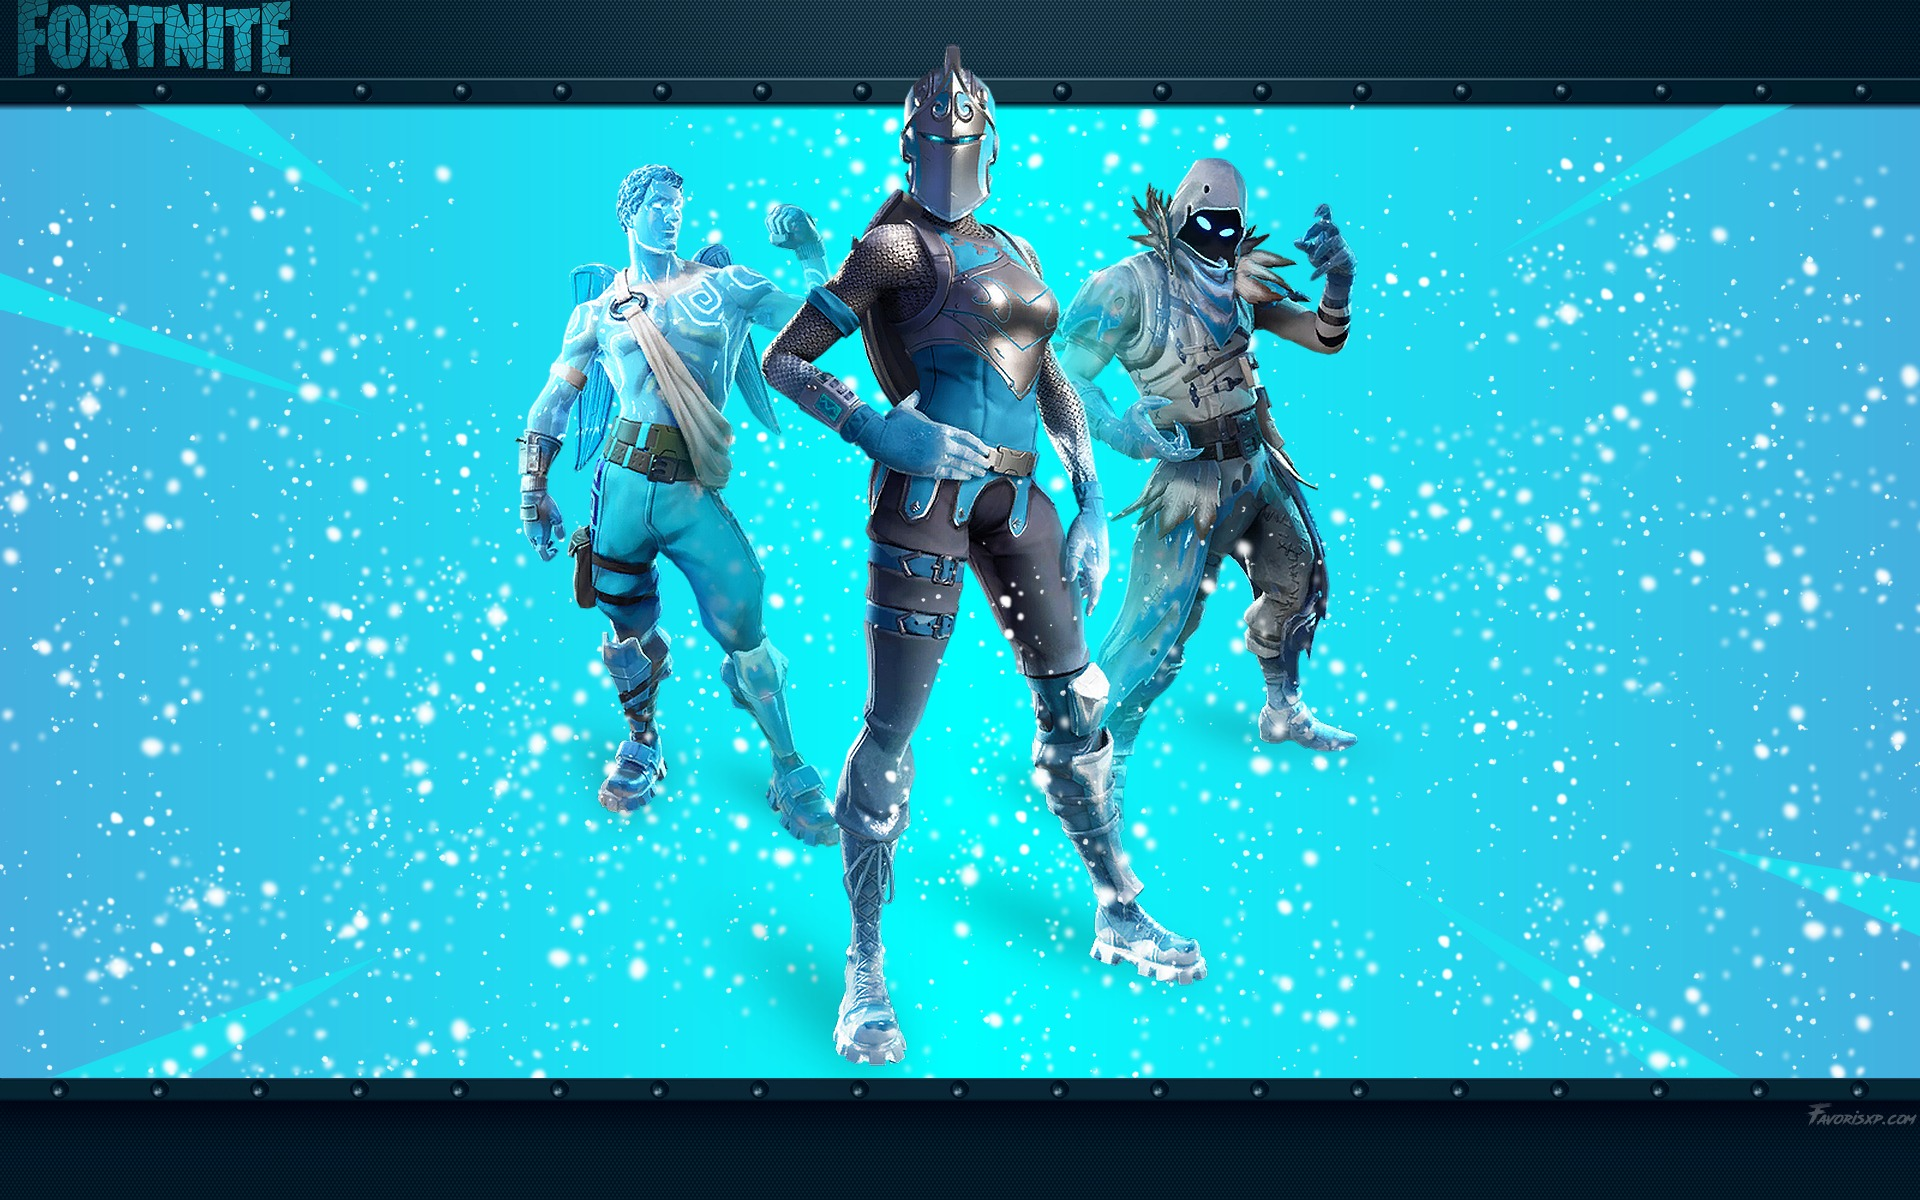 Fortnite Fonds D Ecran Hd Wallpaper De Bureau Gratuit Pour Pc